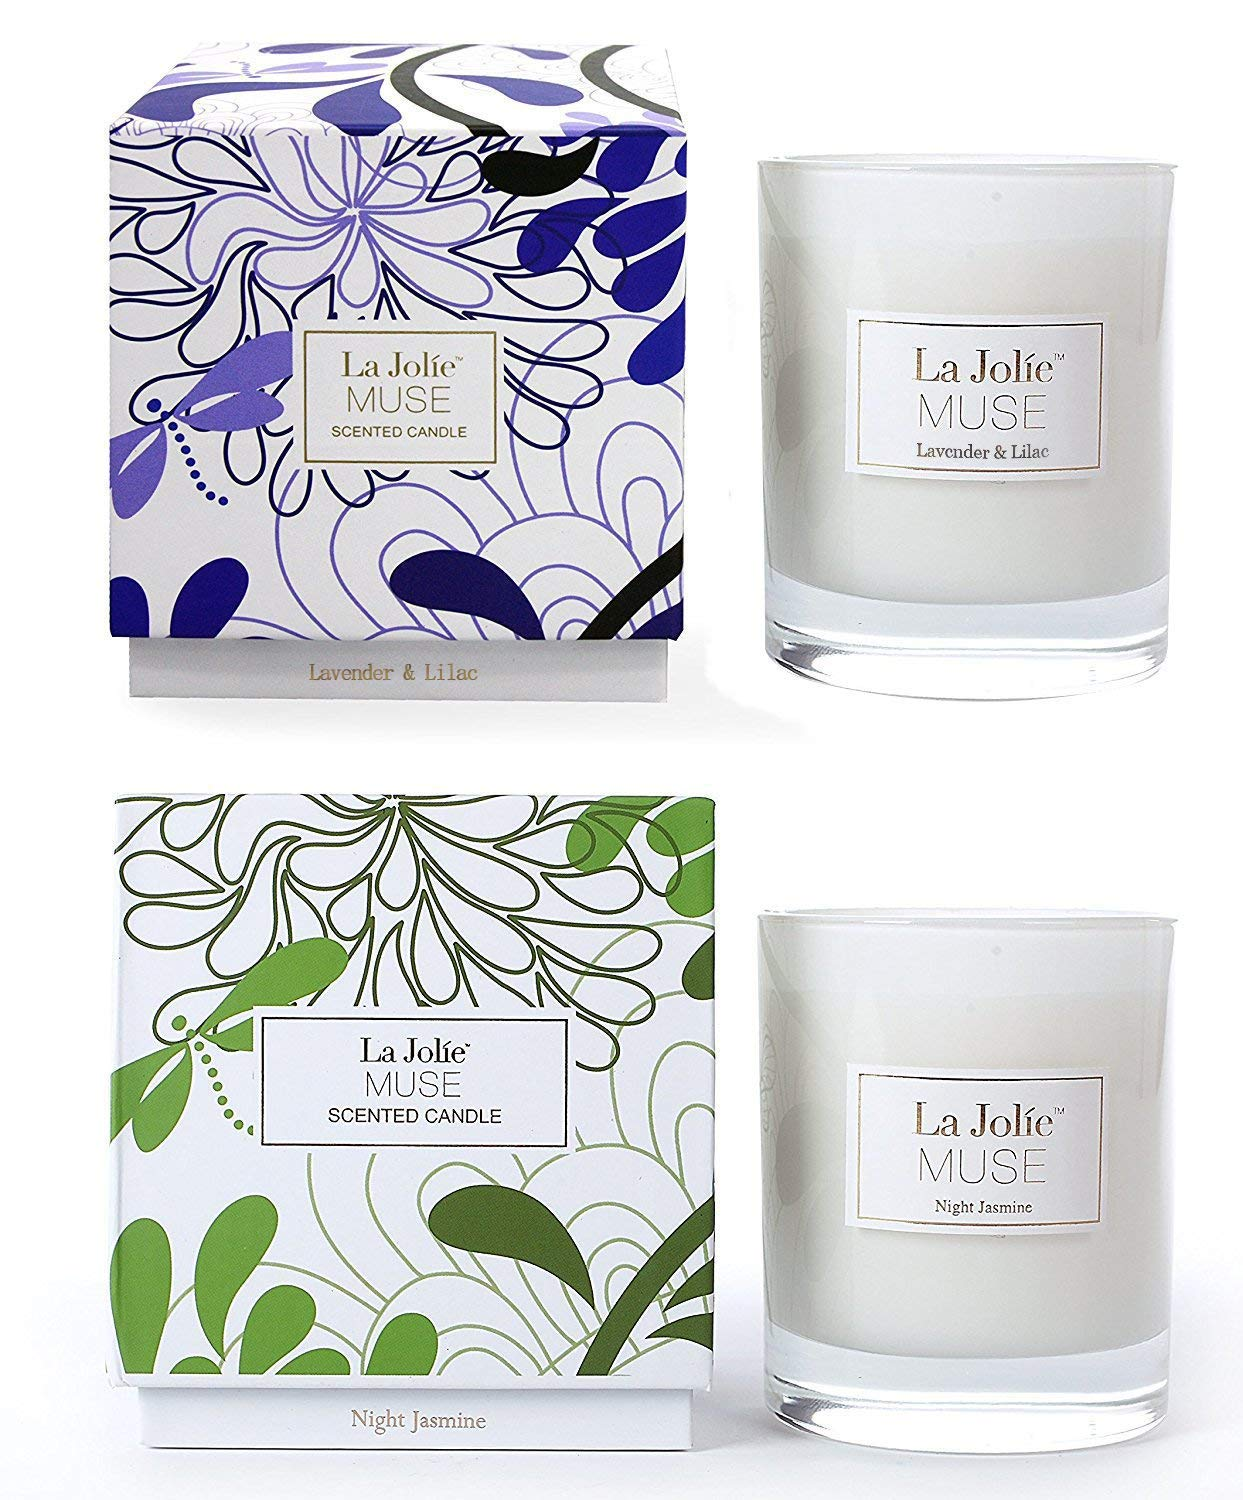 LA JOLIE MUSE Lavender Lilac&Jasmine Scented Candles Aromatherapy Soy Wax, 2 Pack 8.1 oz Each, Gift Candles Home Decoration by LA JOLIE MUSE